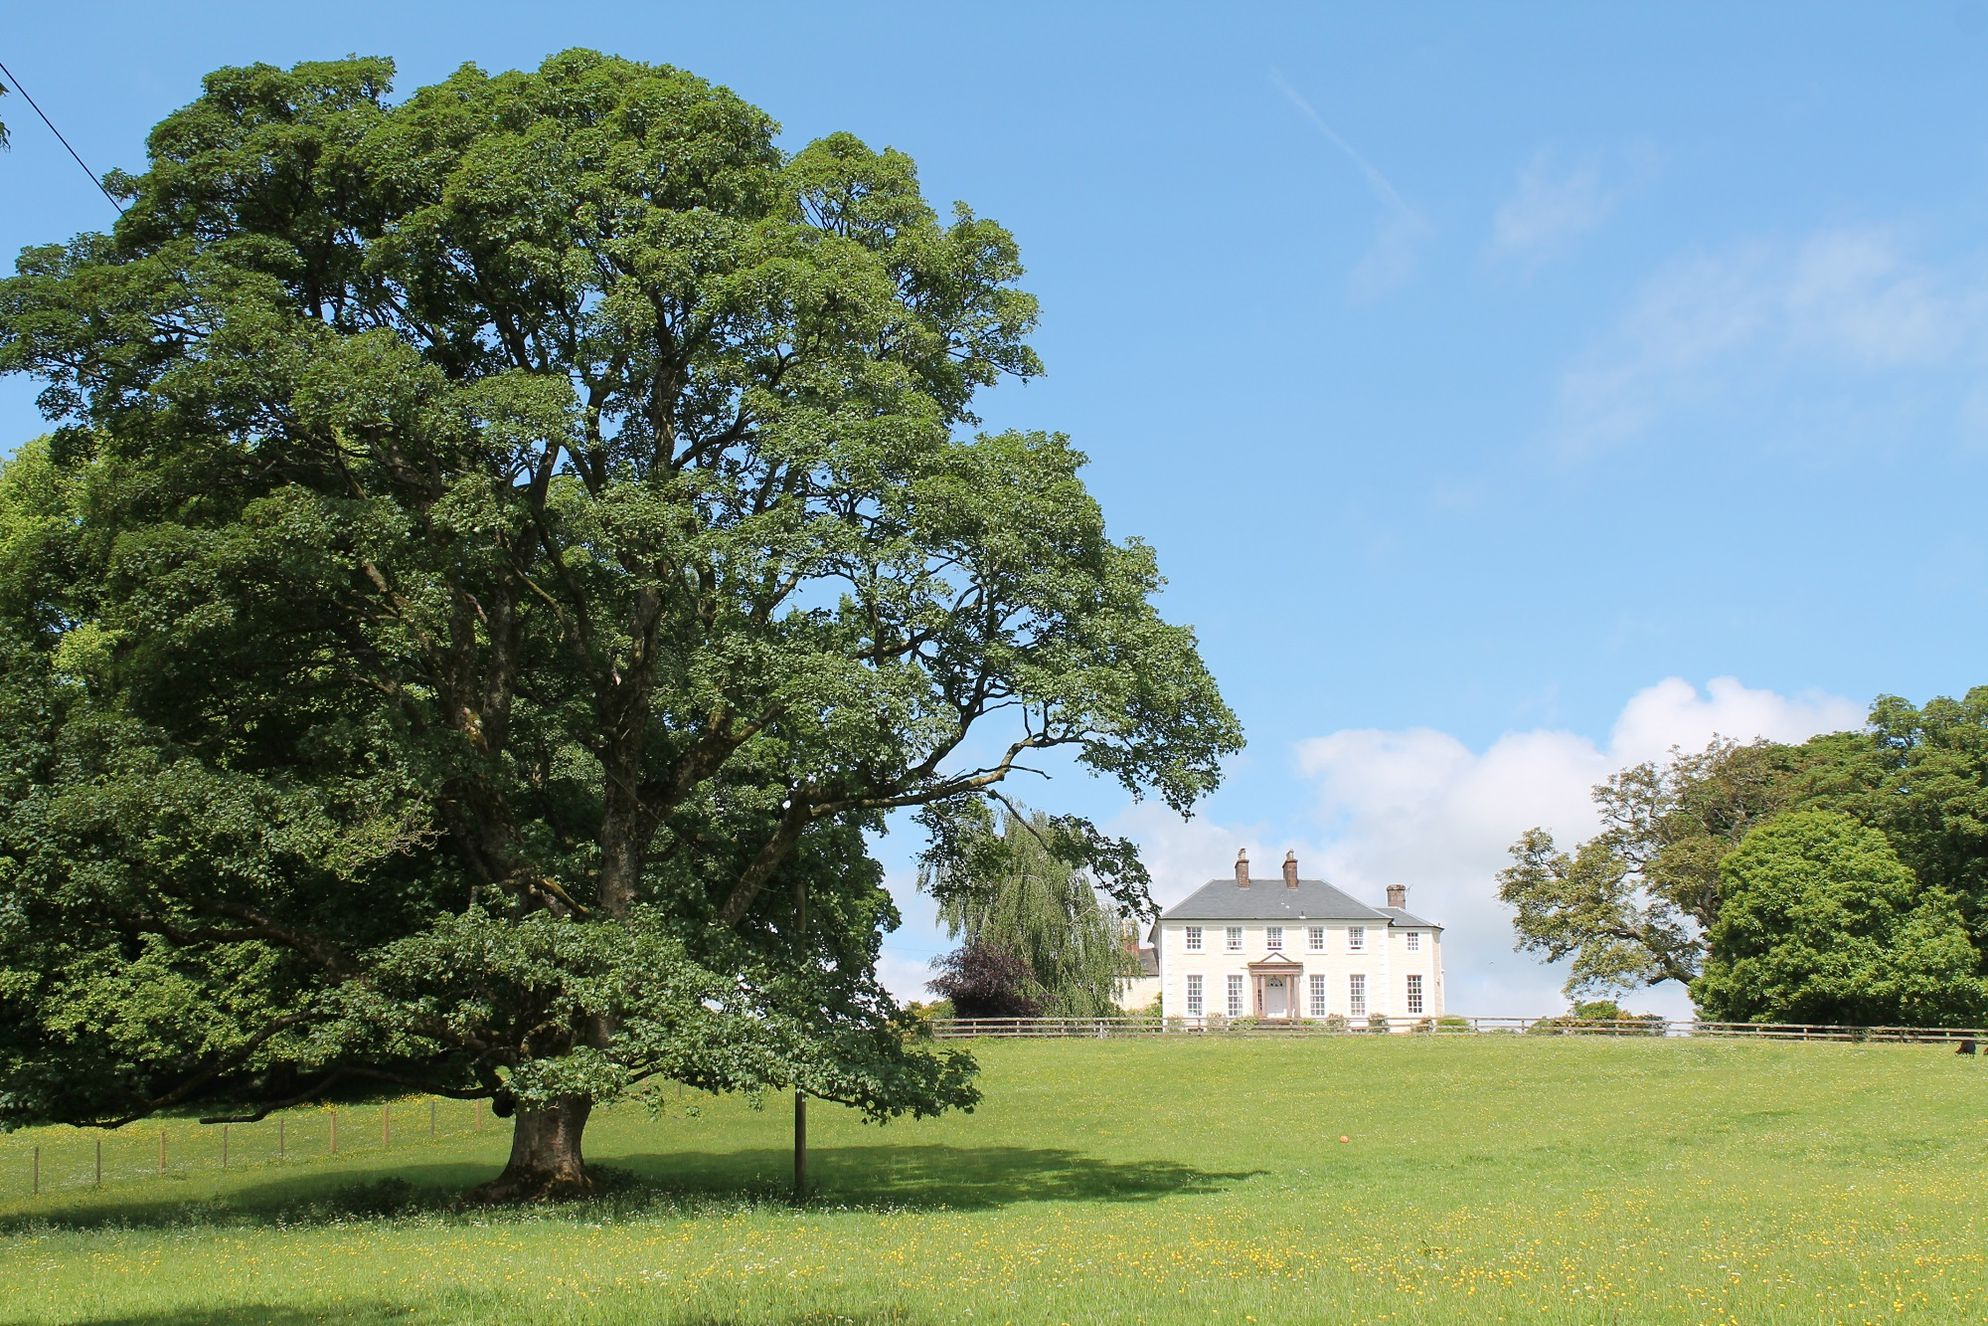 View of Knockhill House from across the grounds. Lots of beautiful lush green grass and wildlife roaming